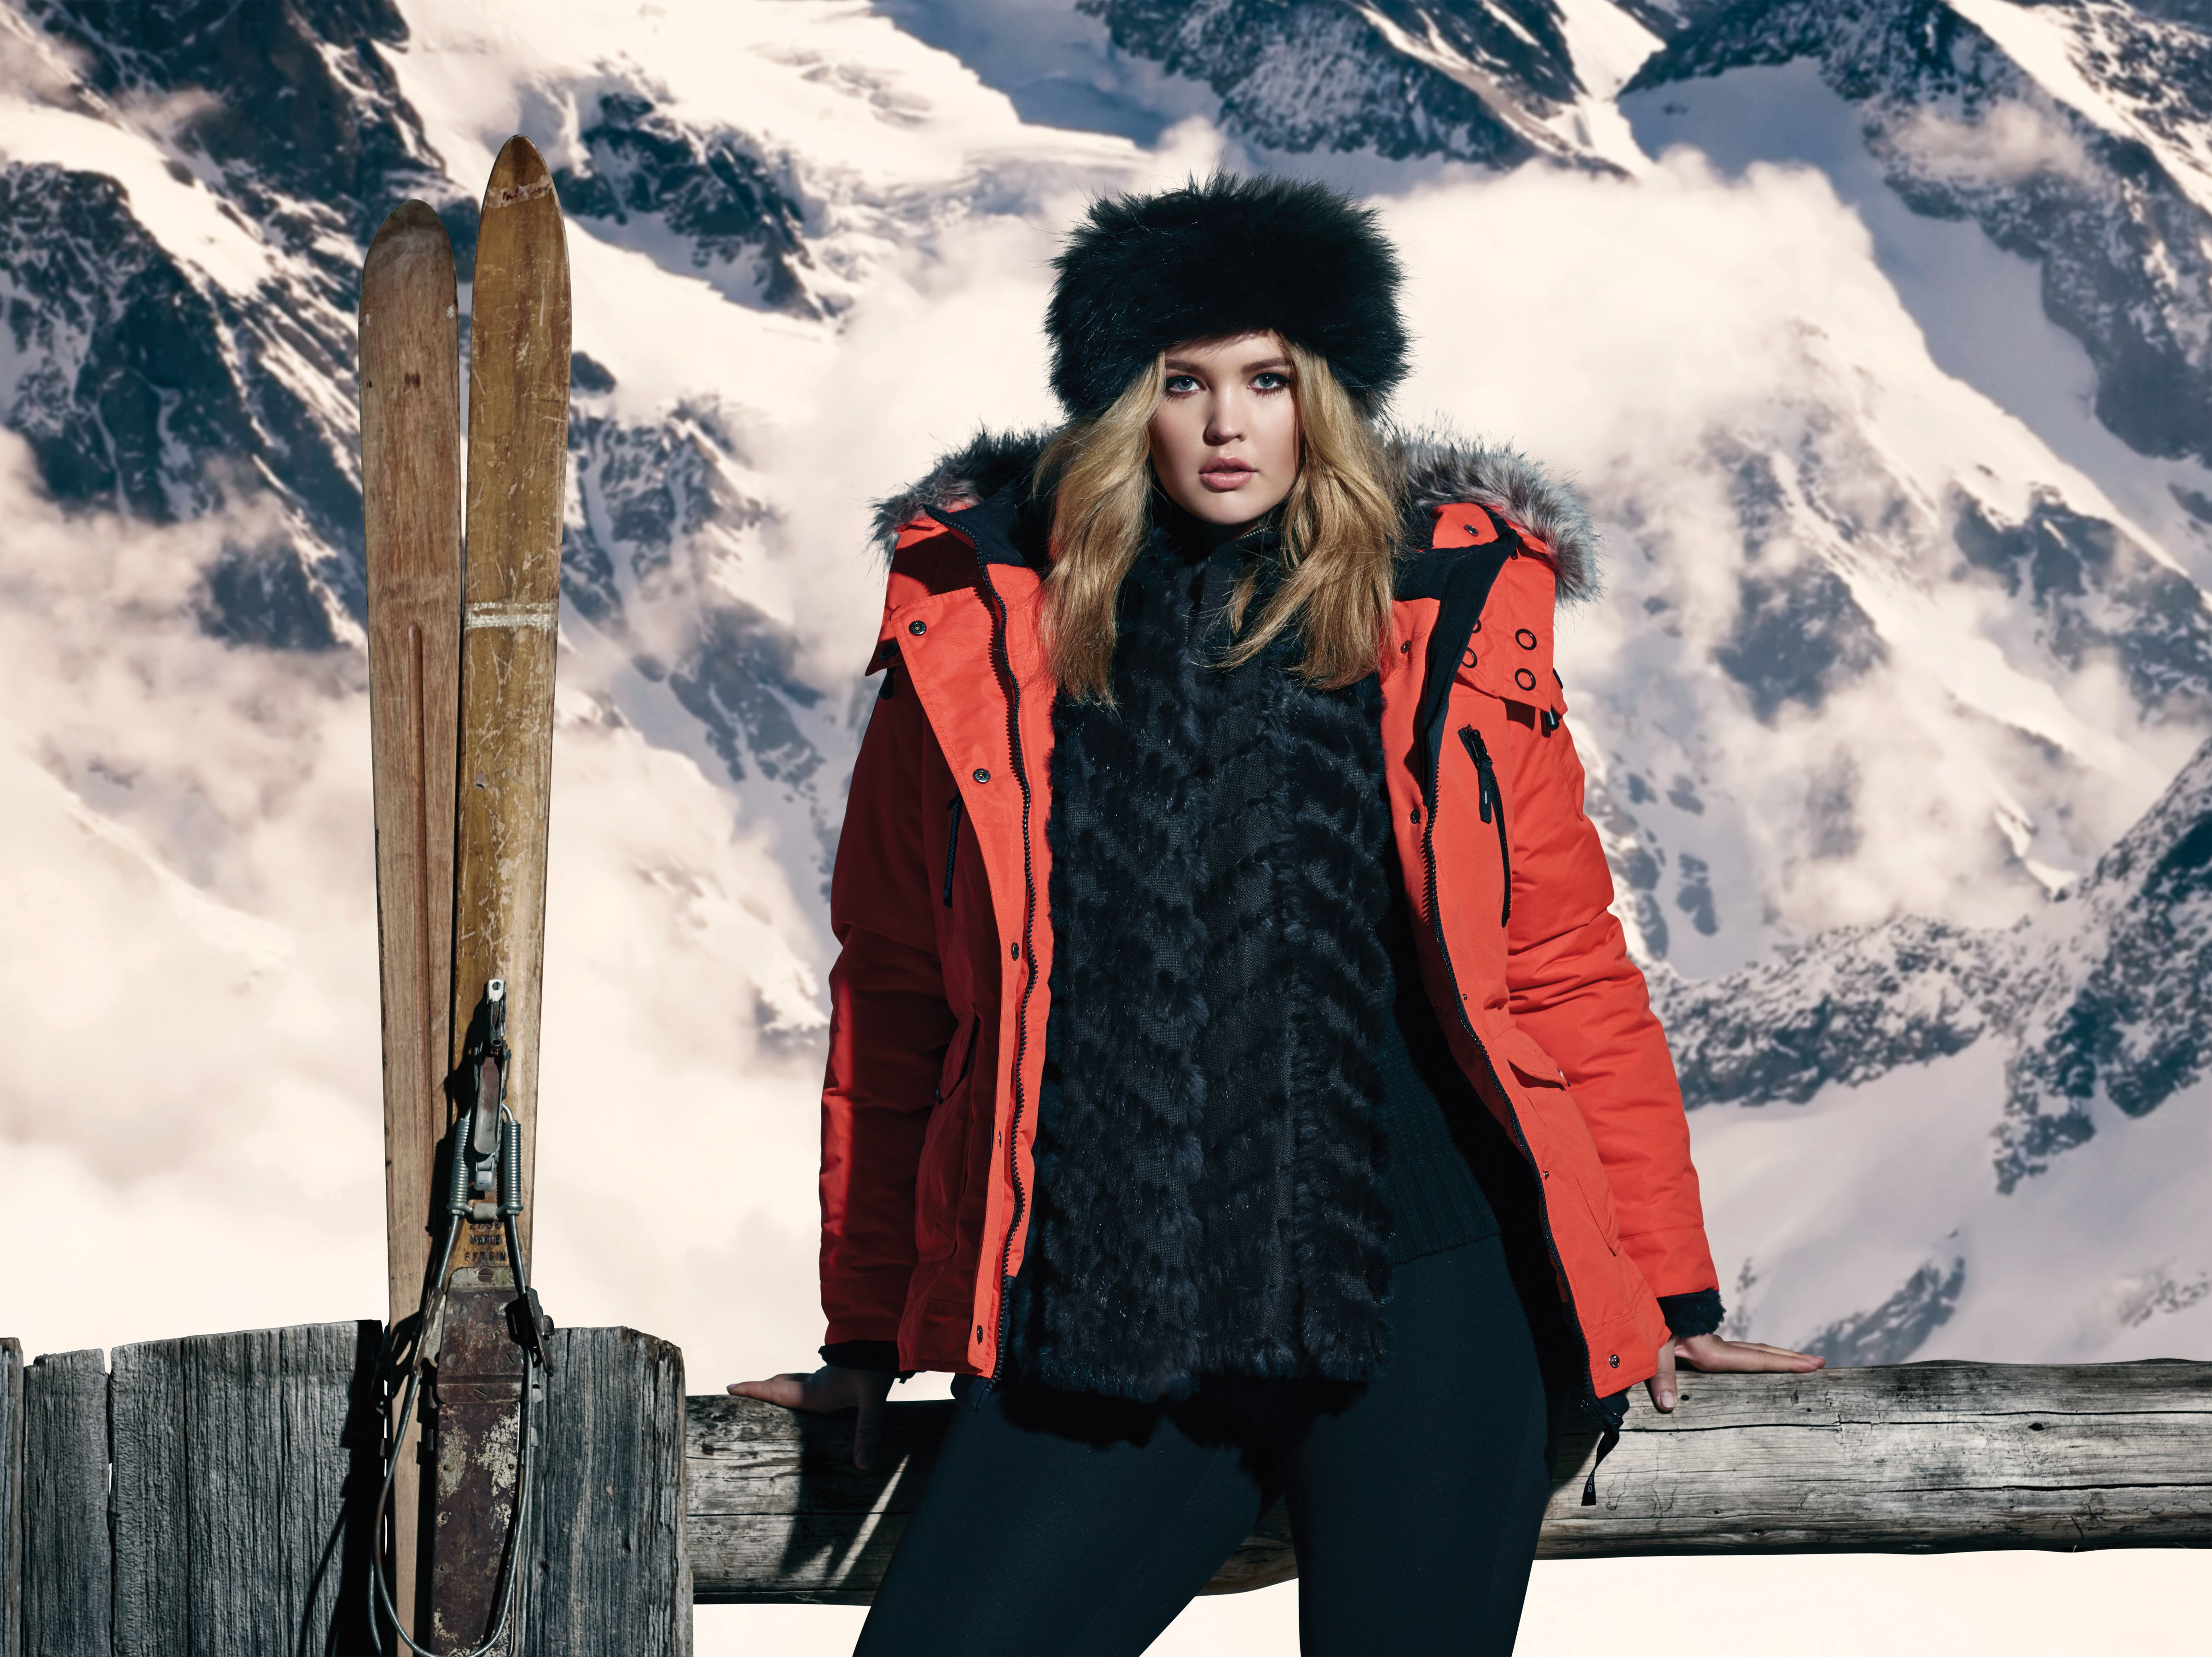 3abaf8851a6 Noize Ski Jacket and Faux Fur Band. Fight the cold temps in style with this